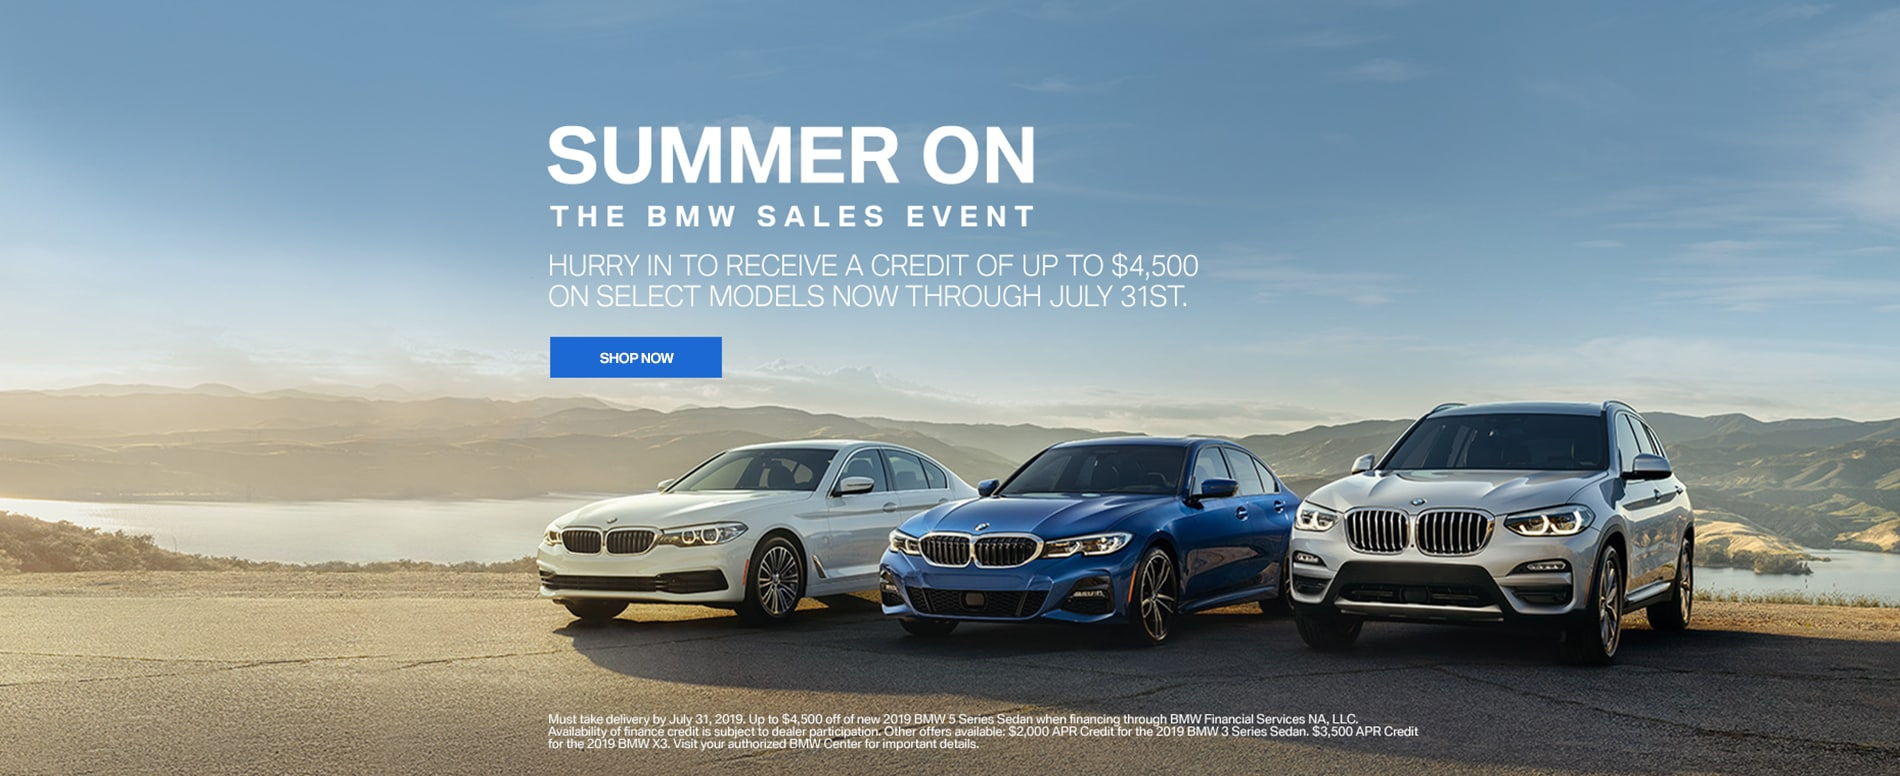 Bmw Dealer Near Me >> Bmw Of Buena Park Bmw Dealership Near Me In Orange County Ca